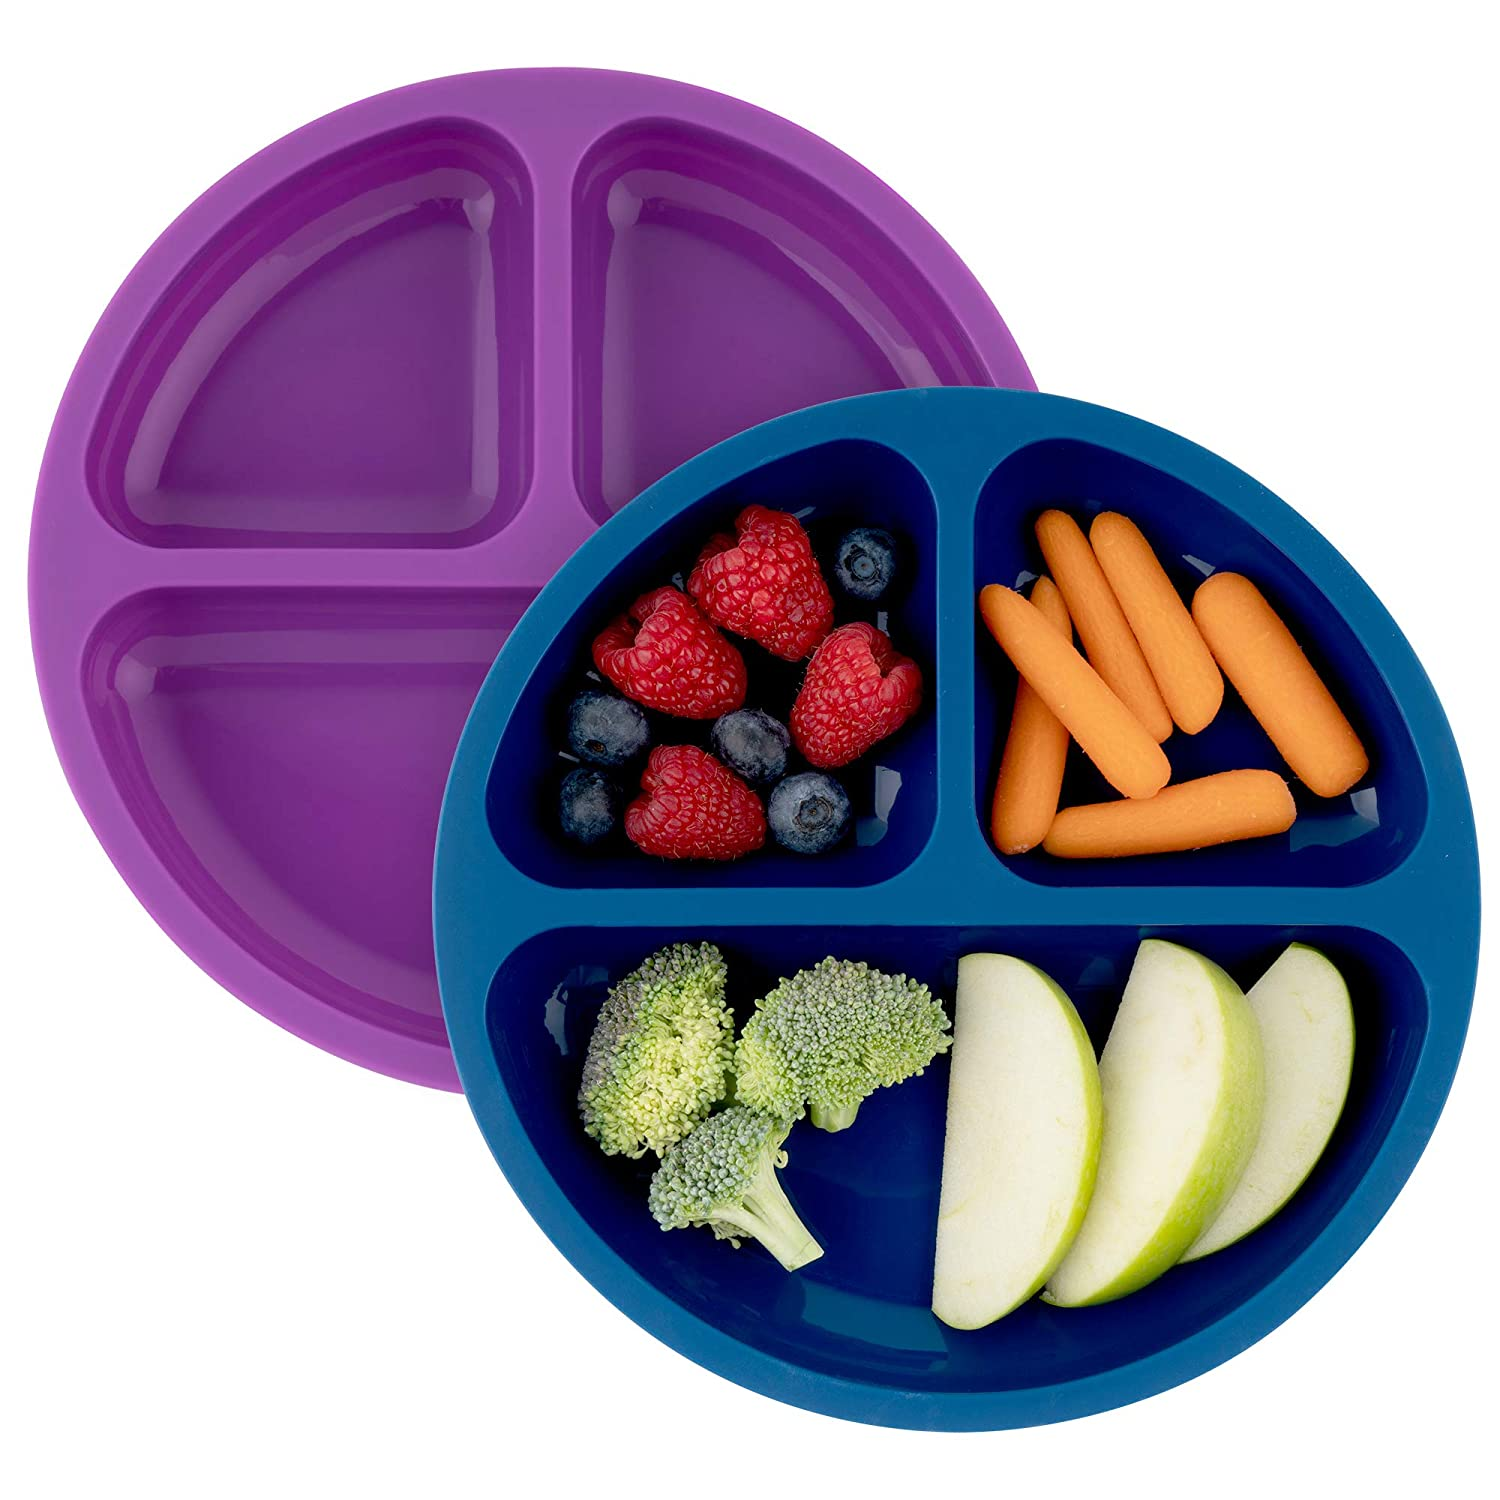 Table-Tot 3-Compartment Plate for Kids, Baby-Safe Silicone Plates for Toddlers (Dark Blue and Grape)